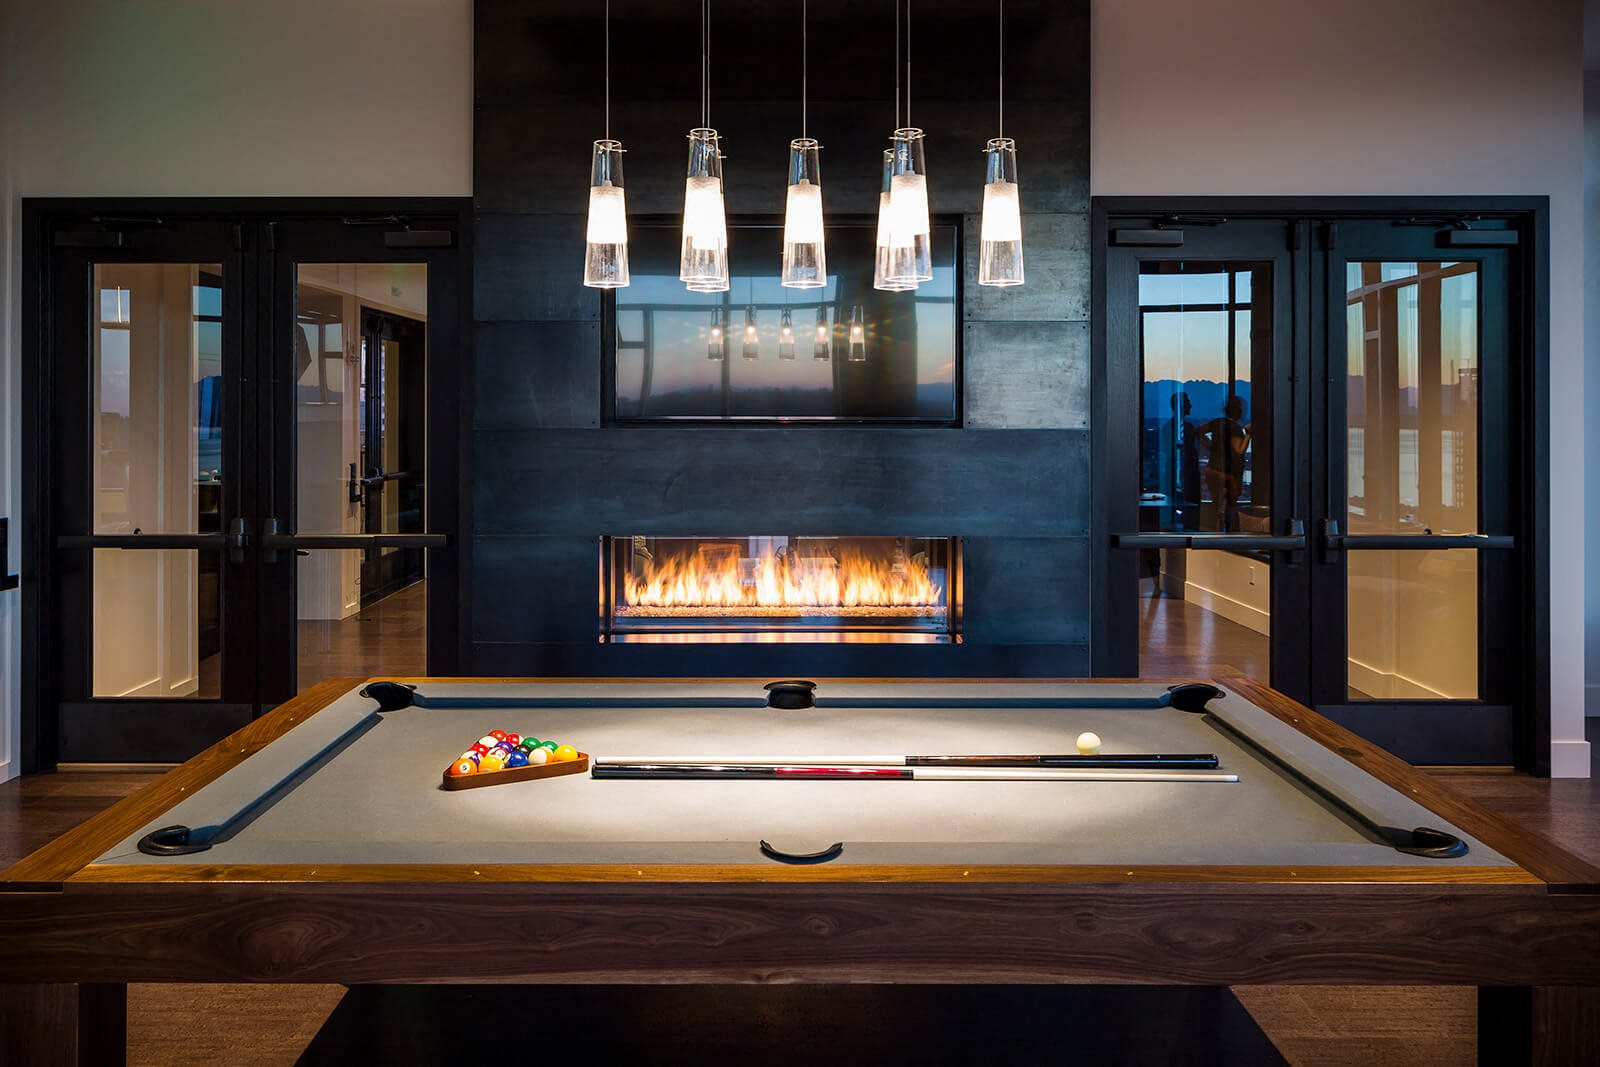 Billiards Table In Sky Lounge at Cirrus, Seattle, WA